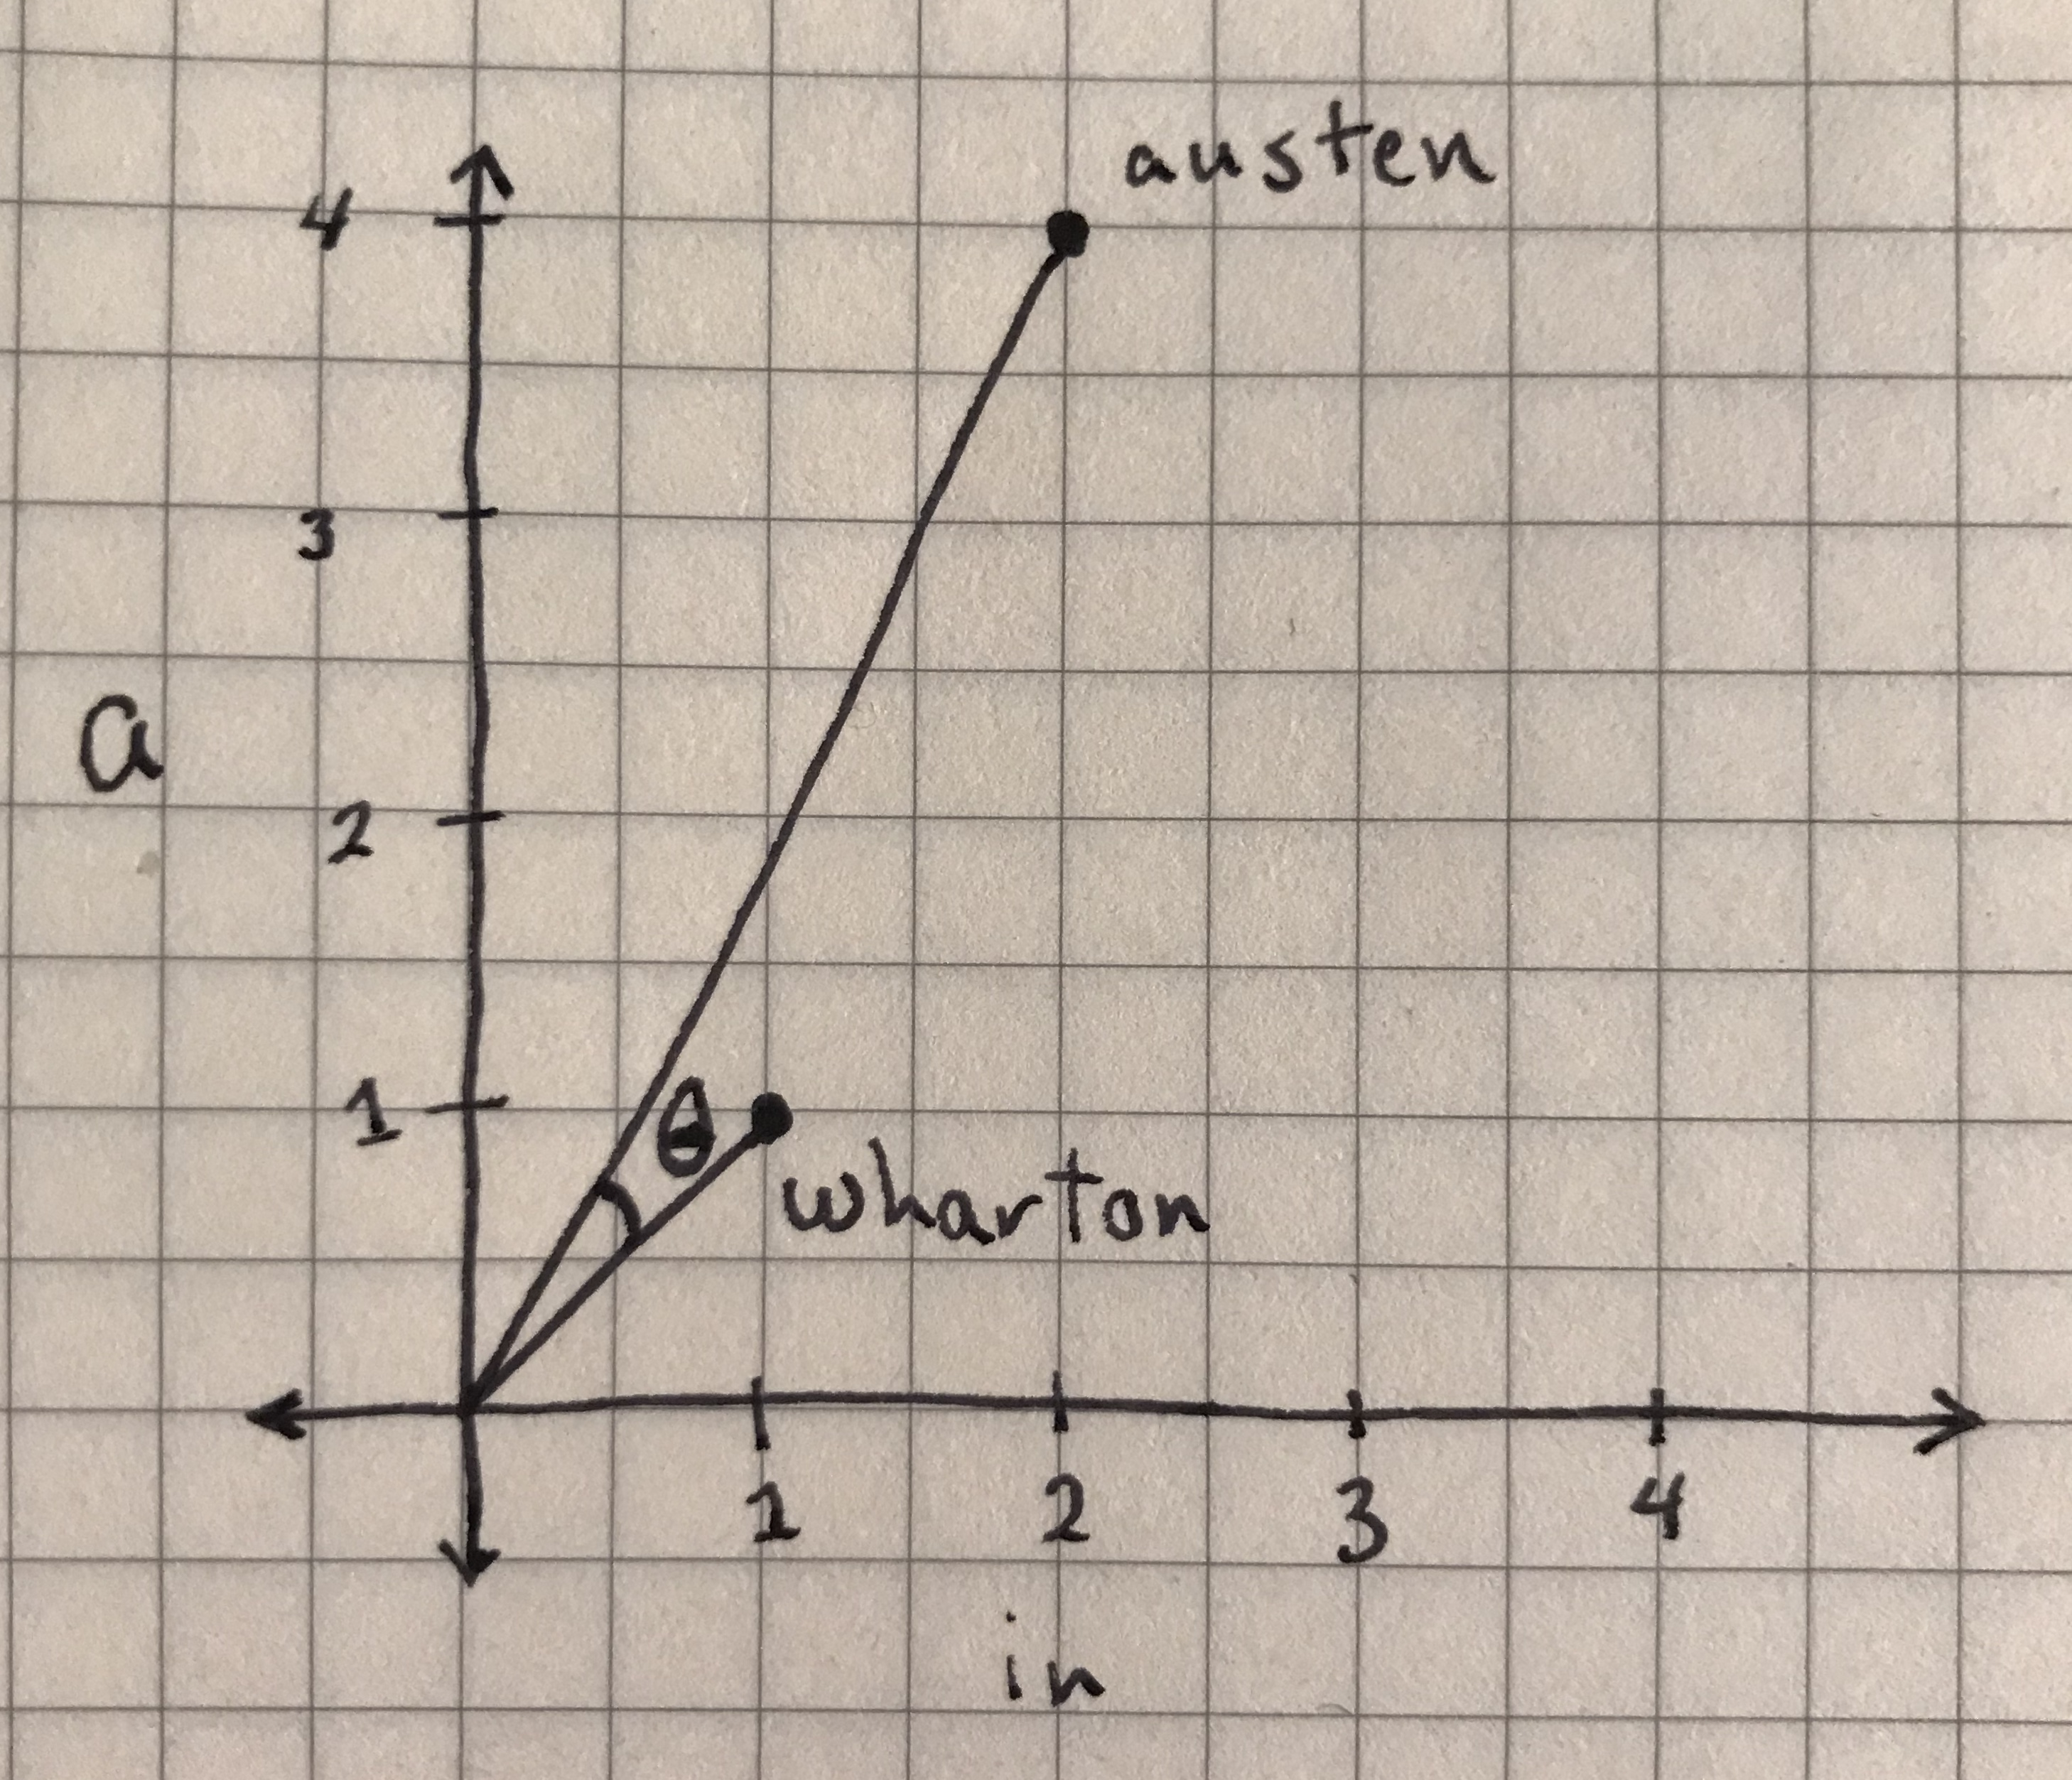 The angle between the 'austen' and 'wharton' data points, from which you will take the cosine.